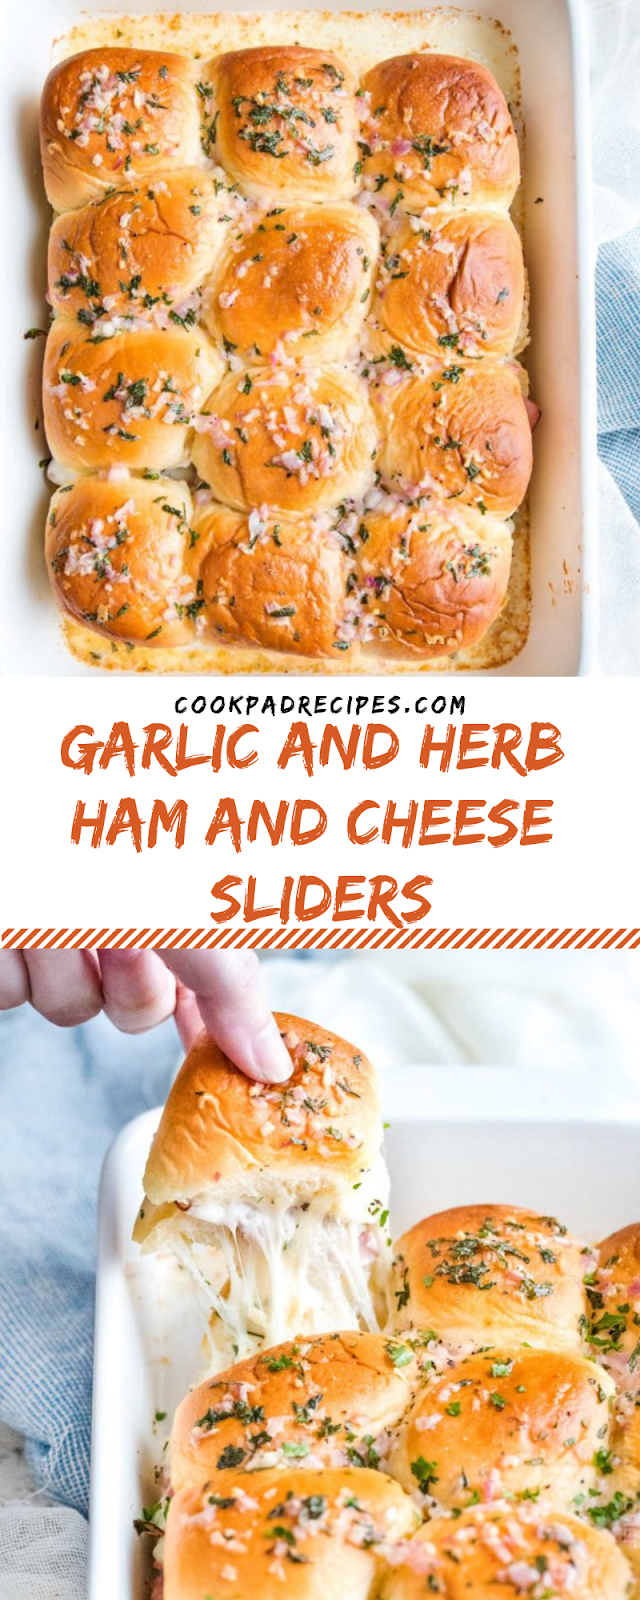 GARLIC AND HERB HAM AND CHEESE SLIDERS